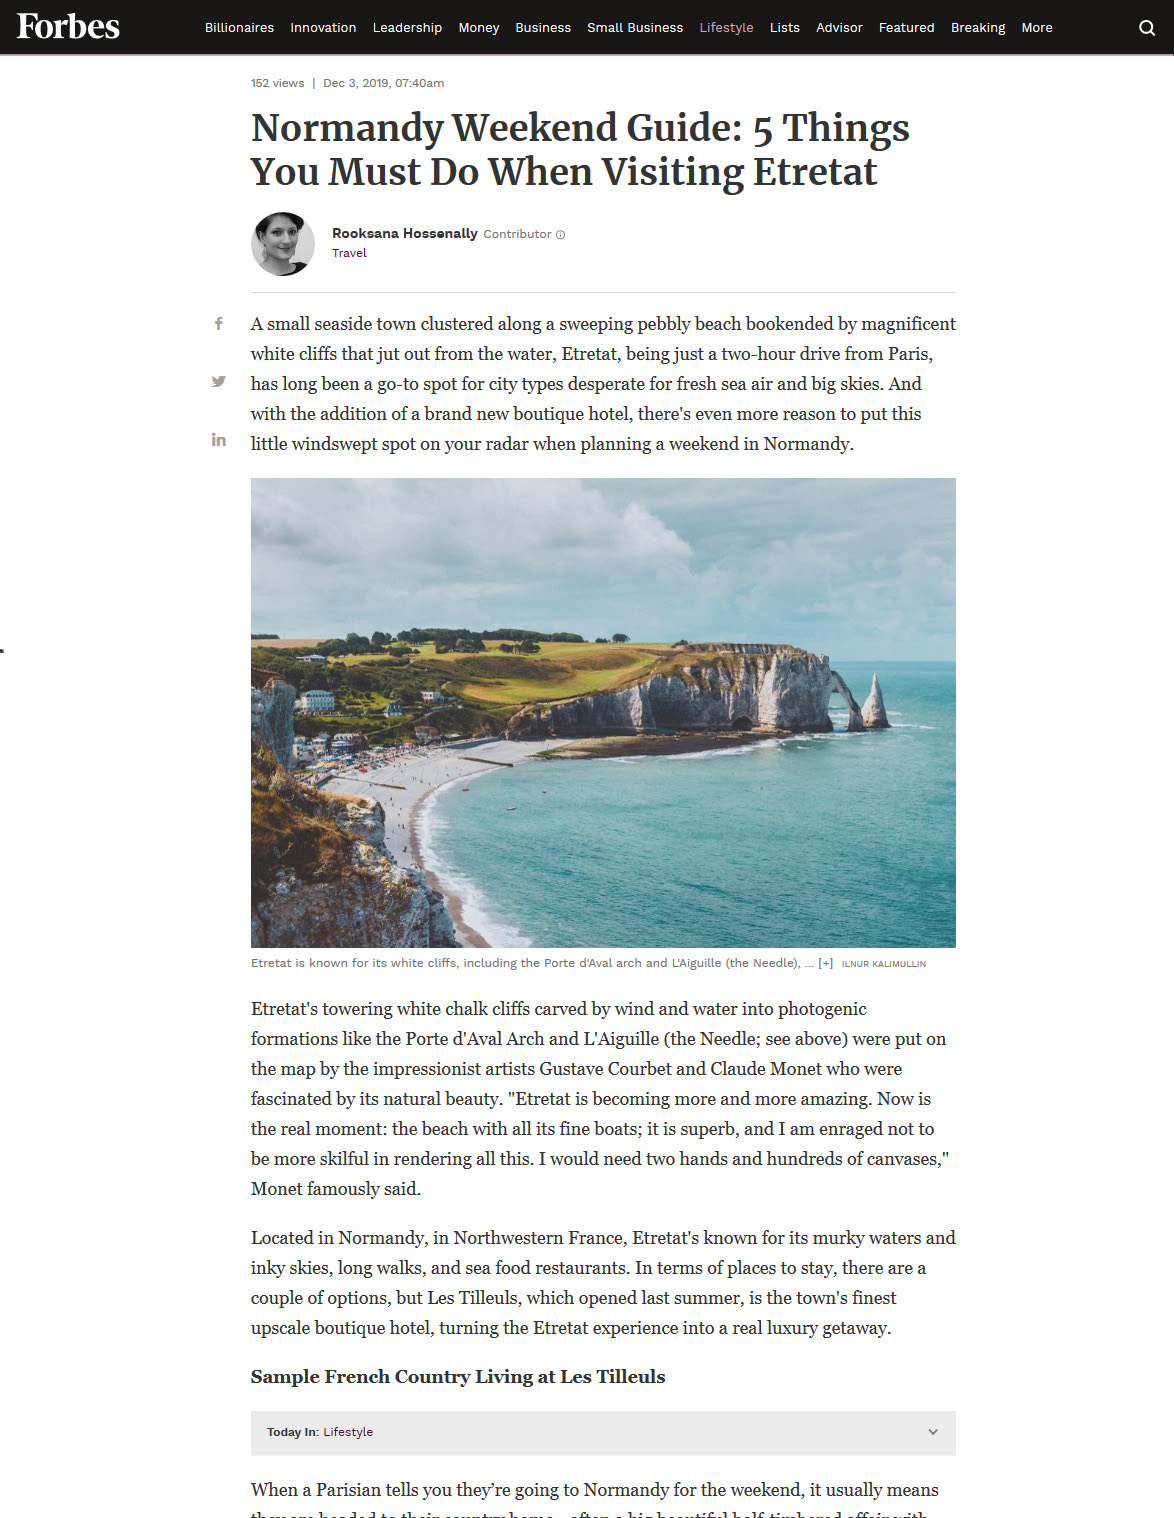 Forbes: Normandy Weekend Guide. 5 Things You Must Do When Visiting Etretat